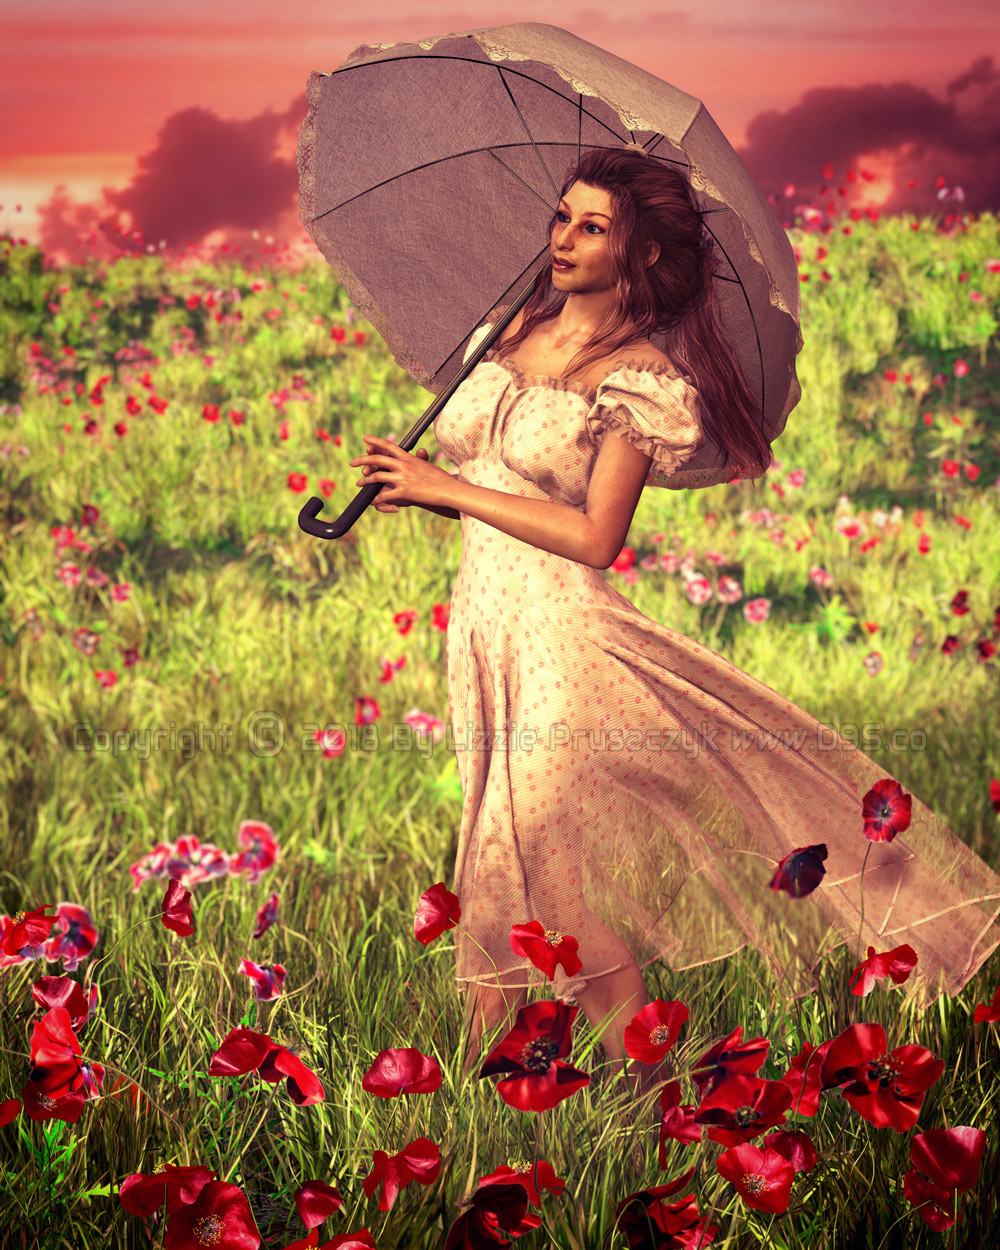 A young woman takes a leisurely walk through a field of poppies at sunset.